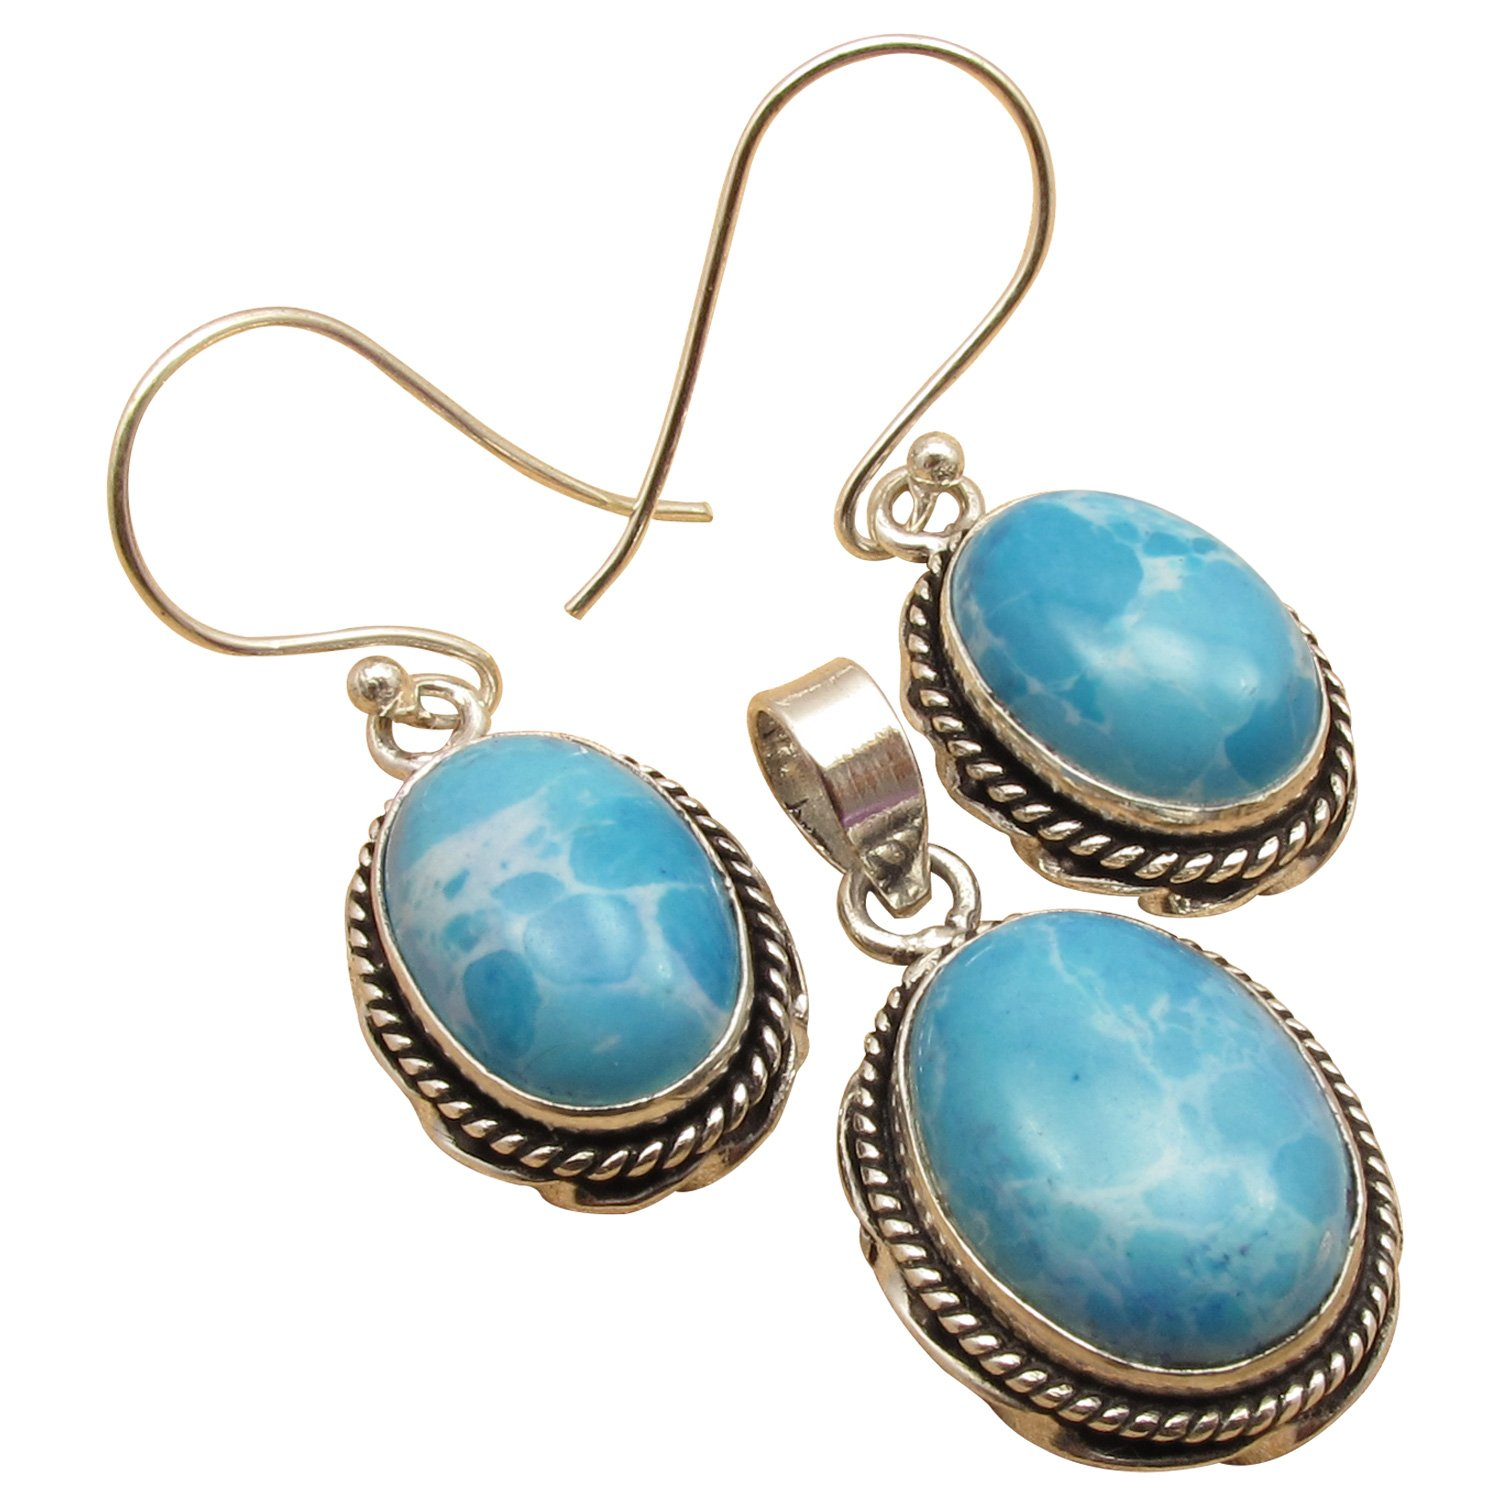 Oval Stone Handcrafted MATCHING Earrings & Pendant SET ! 925 Sterling Silver Plated Deco Jewelry